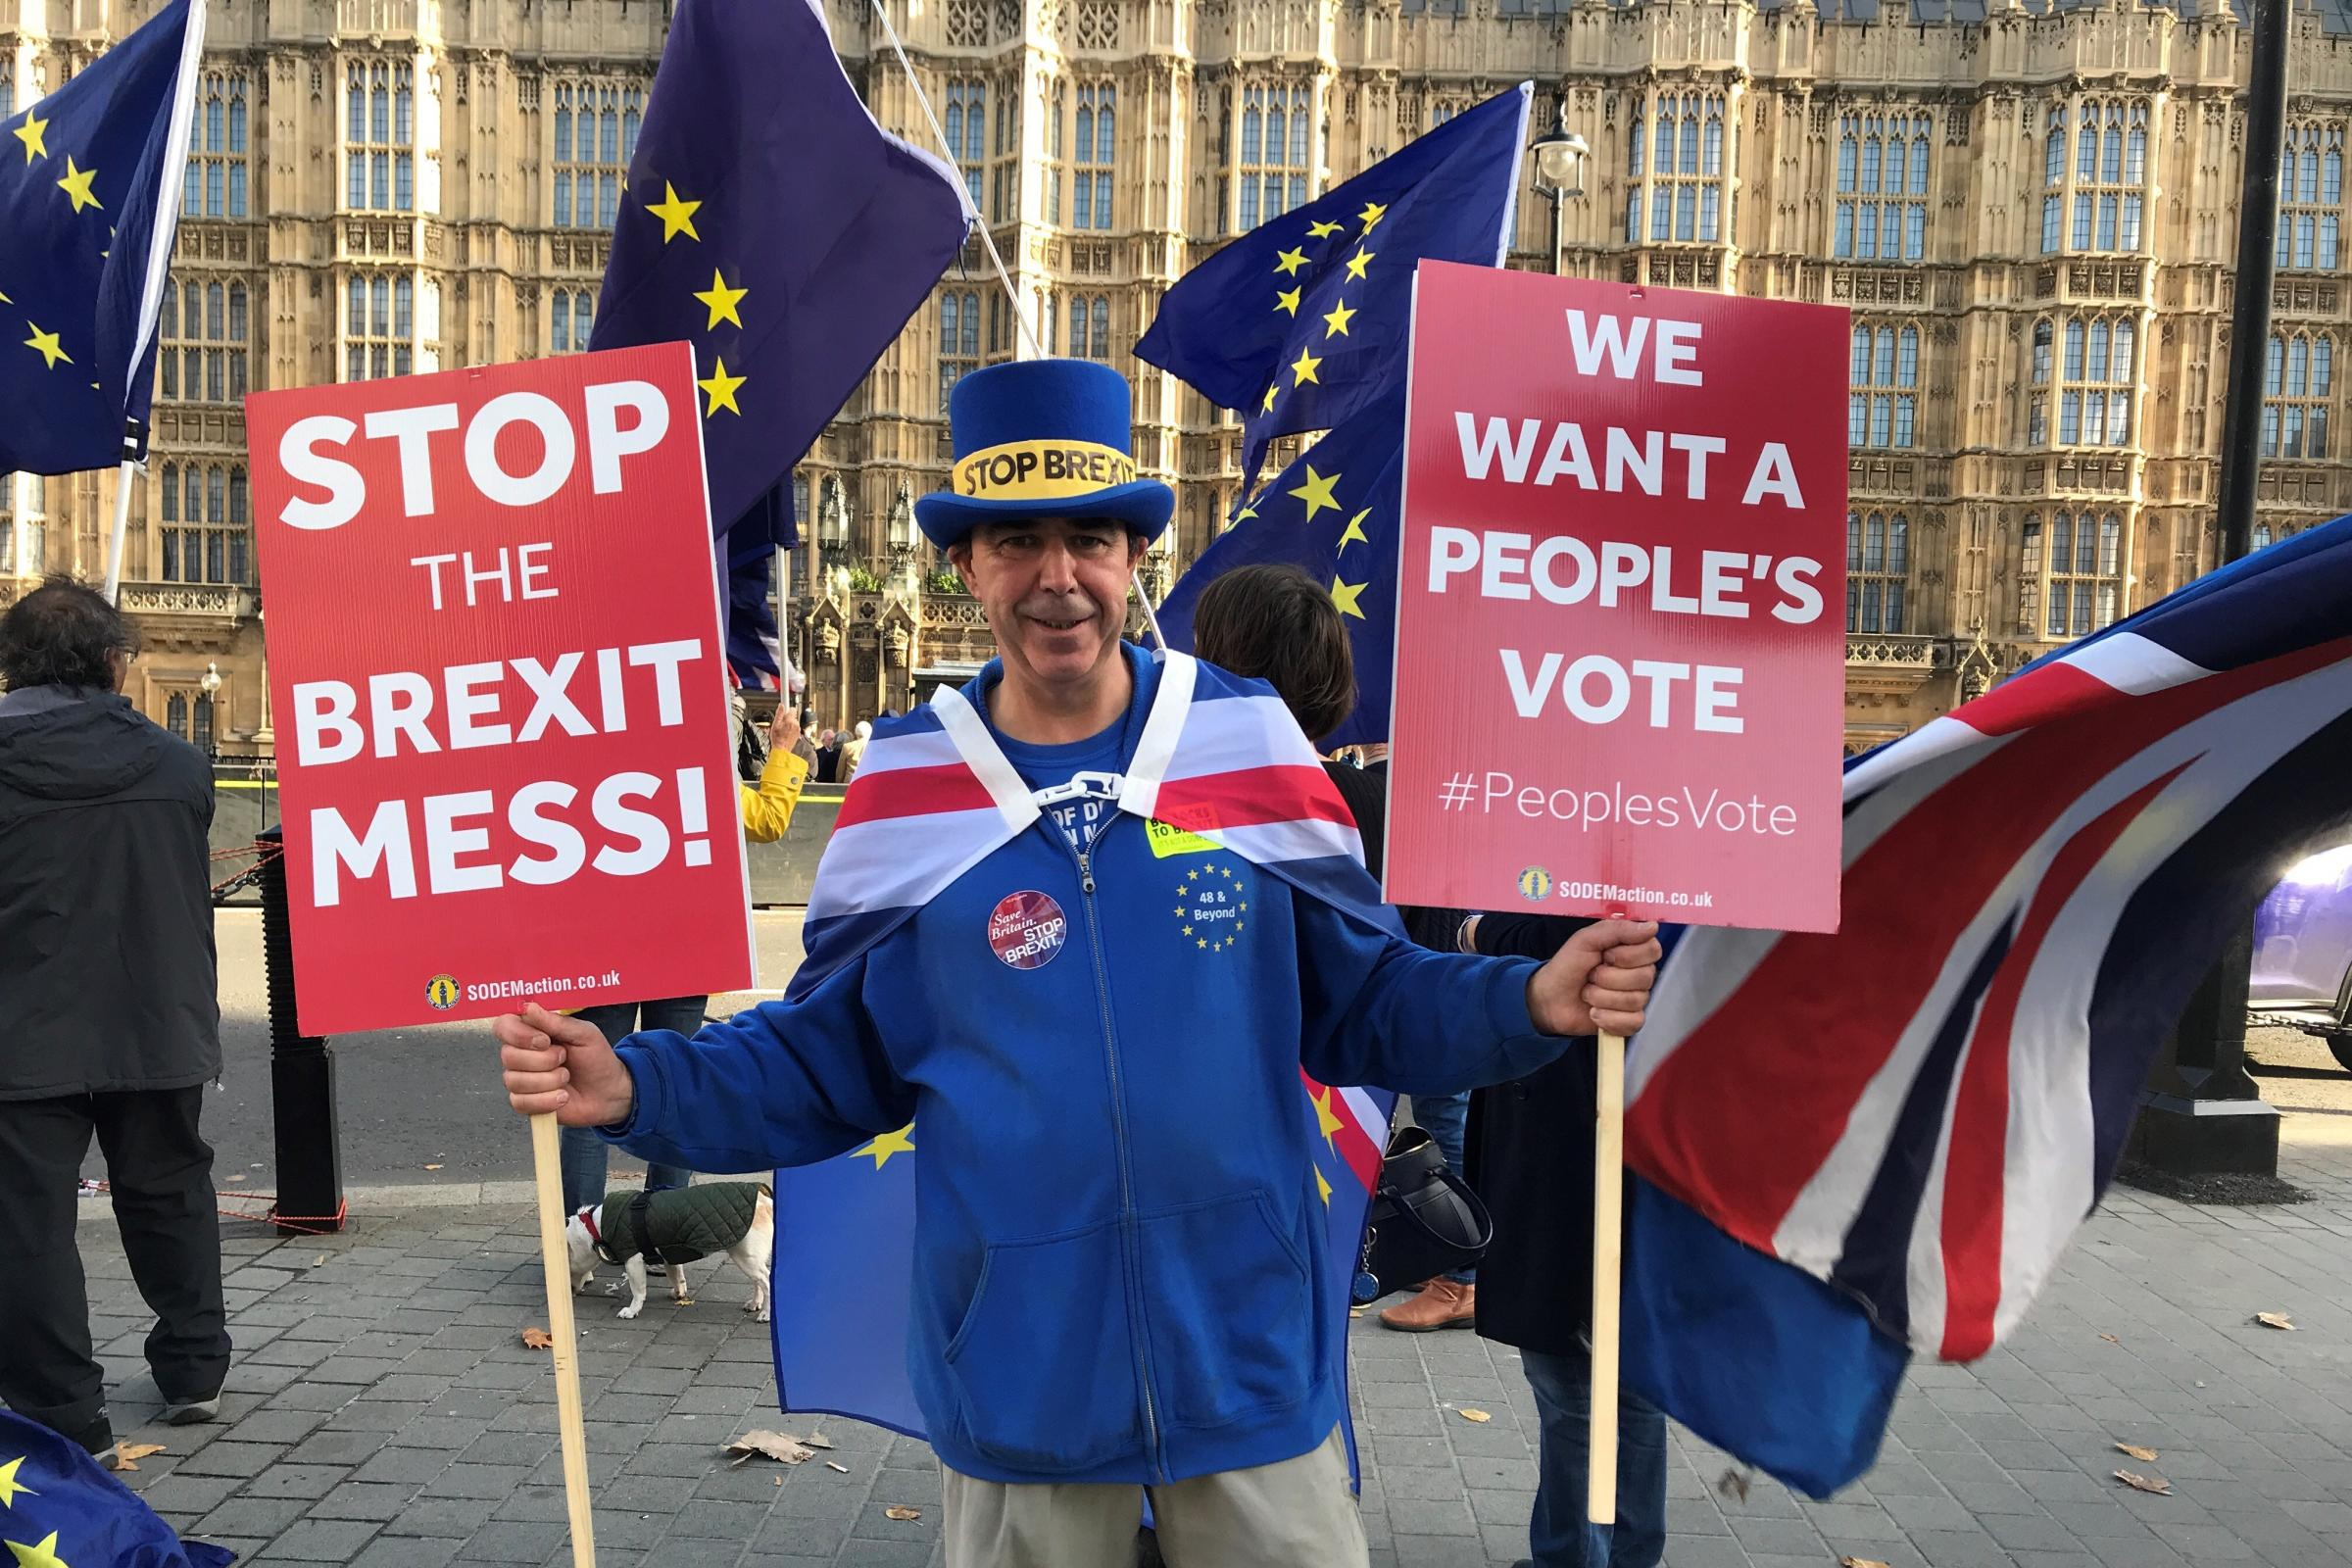 This 'stop Brexit' protester stole the show during a serious TV interview